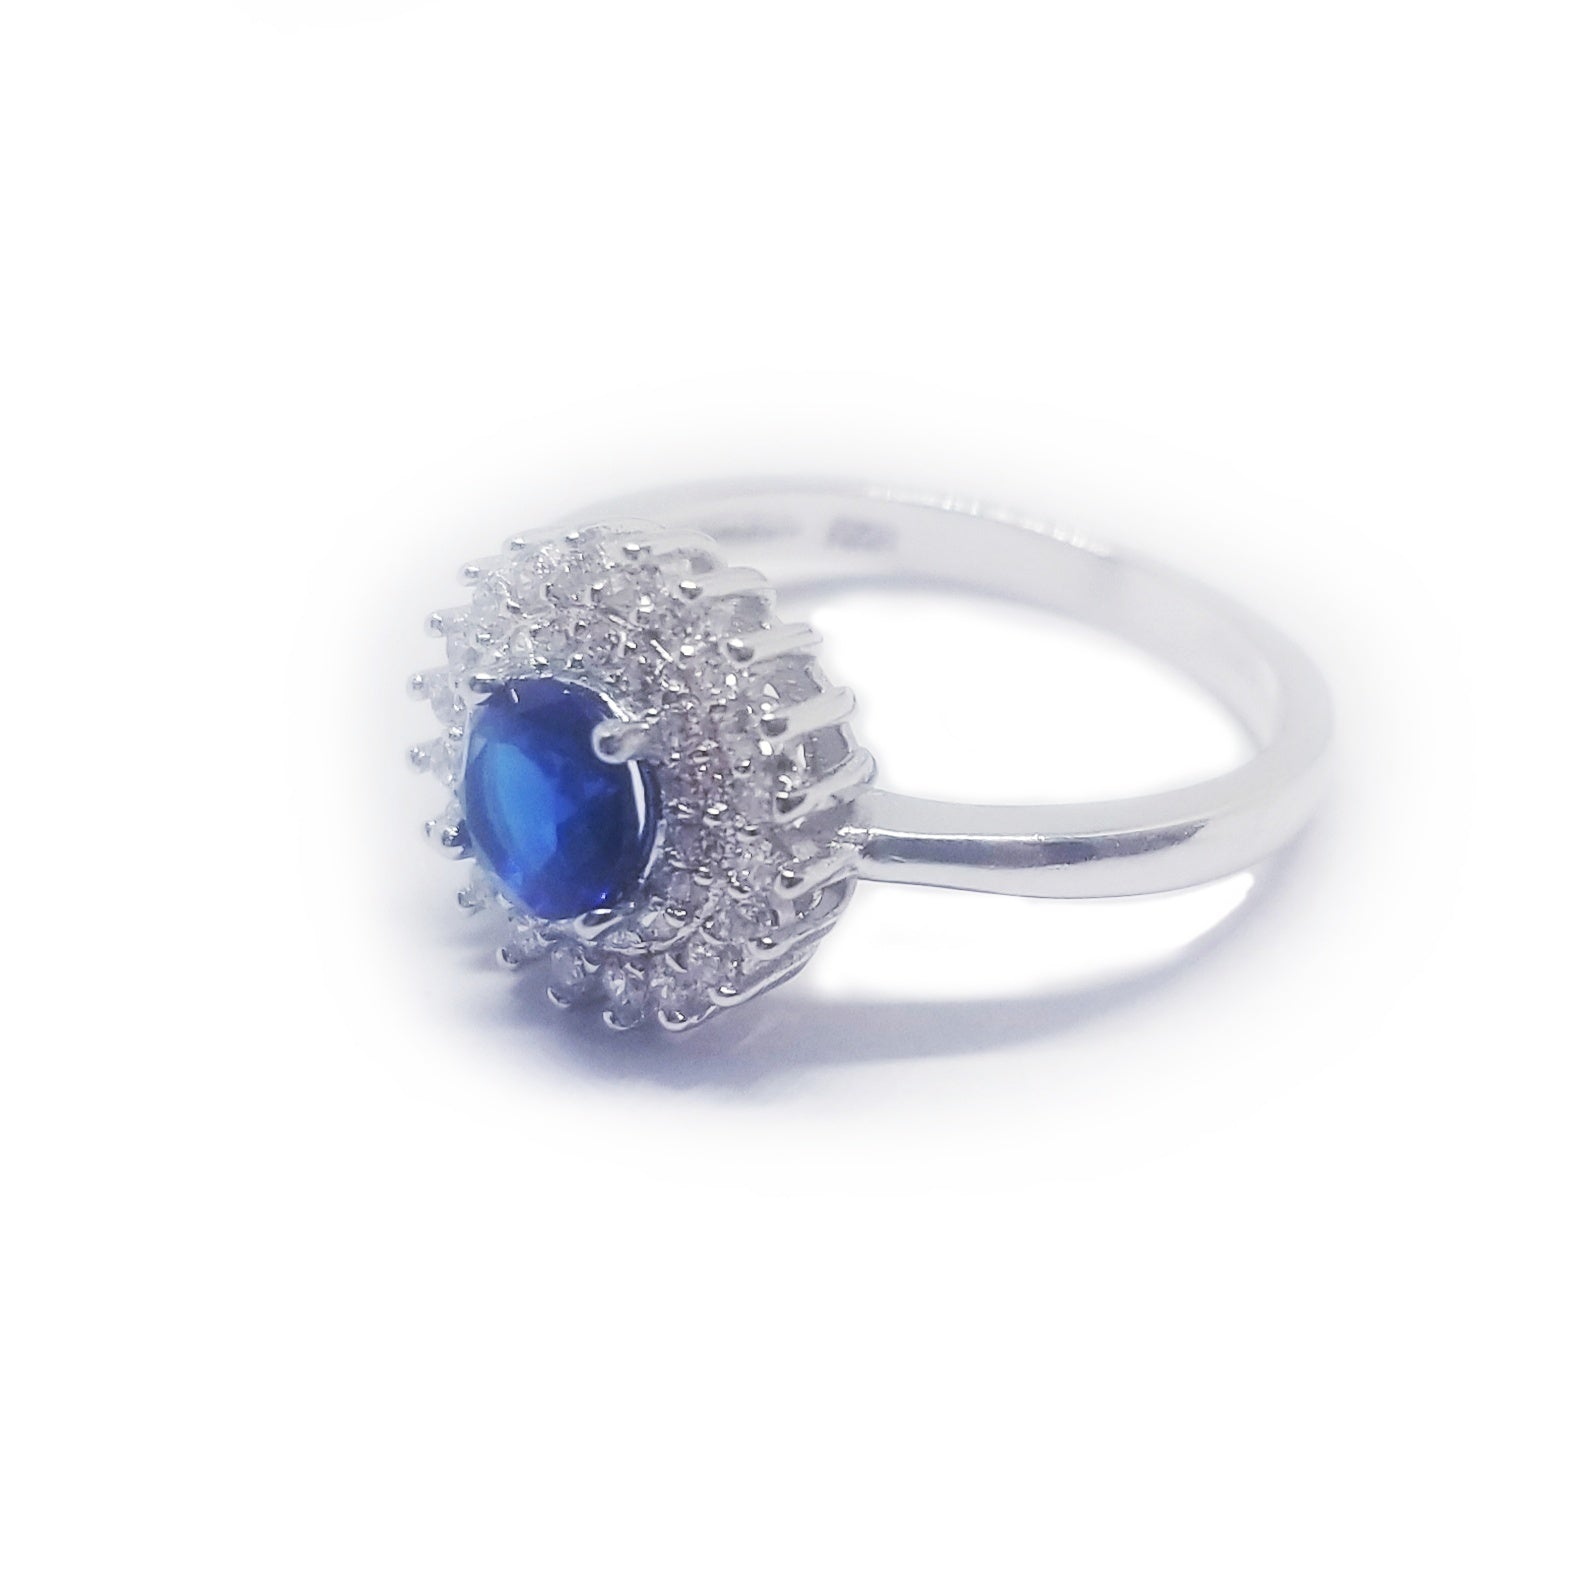 Lateral view blue sapphire colored cz silver ring